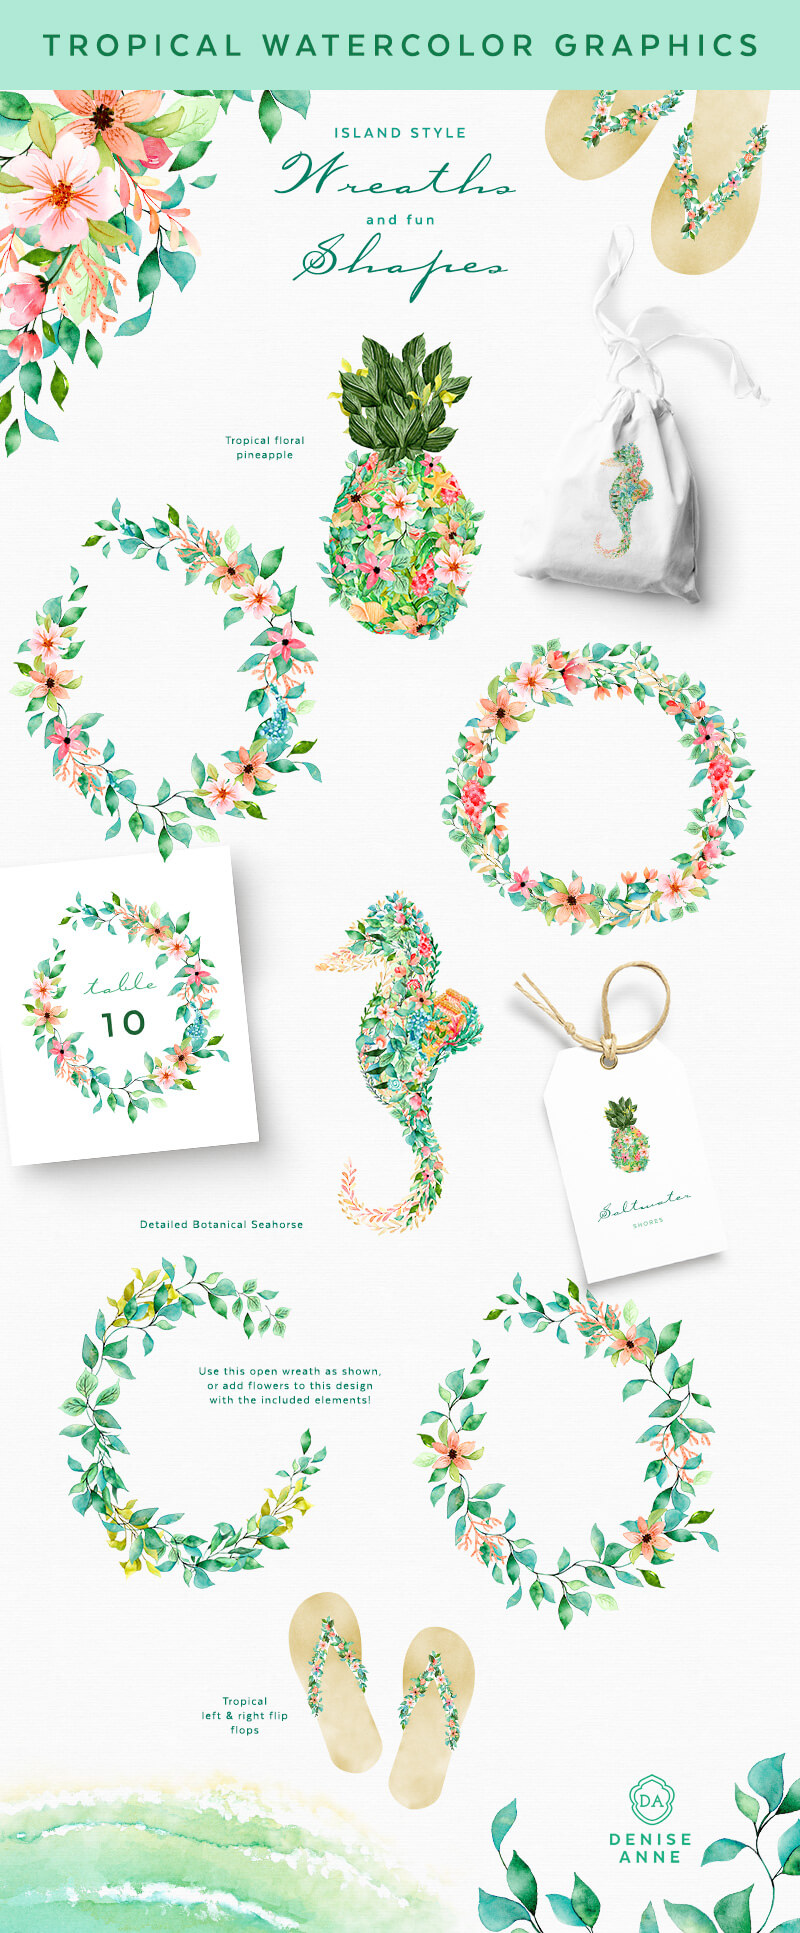 Tropical watercolor clipart graphics flower wreath with seahorse and pineapple